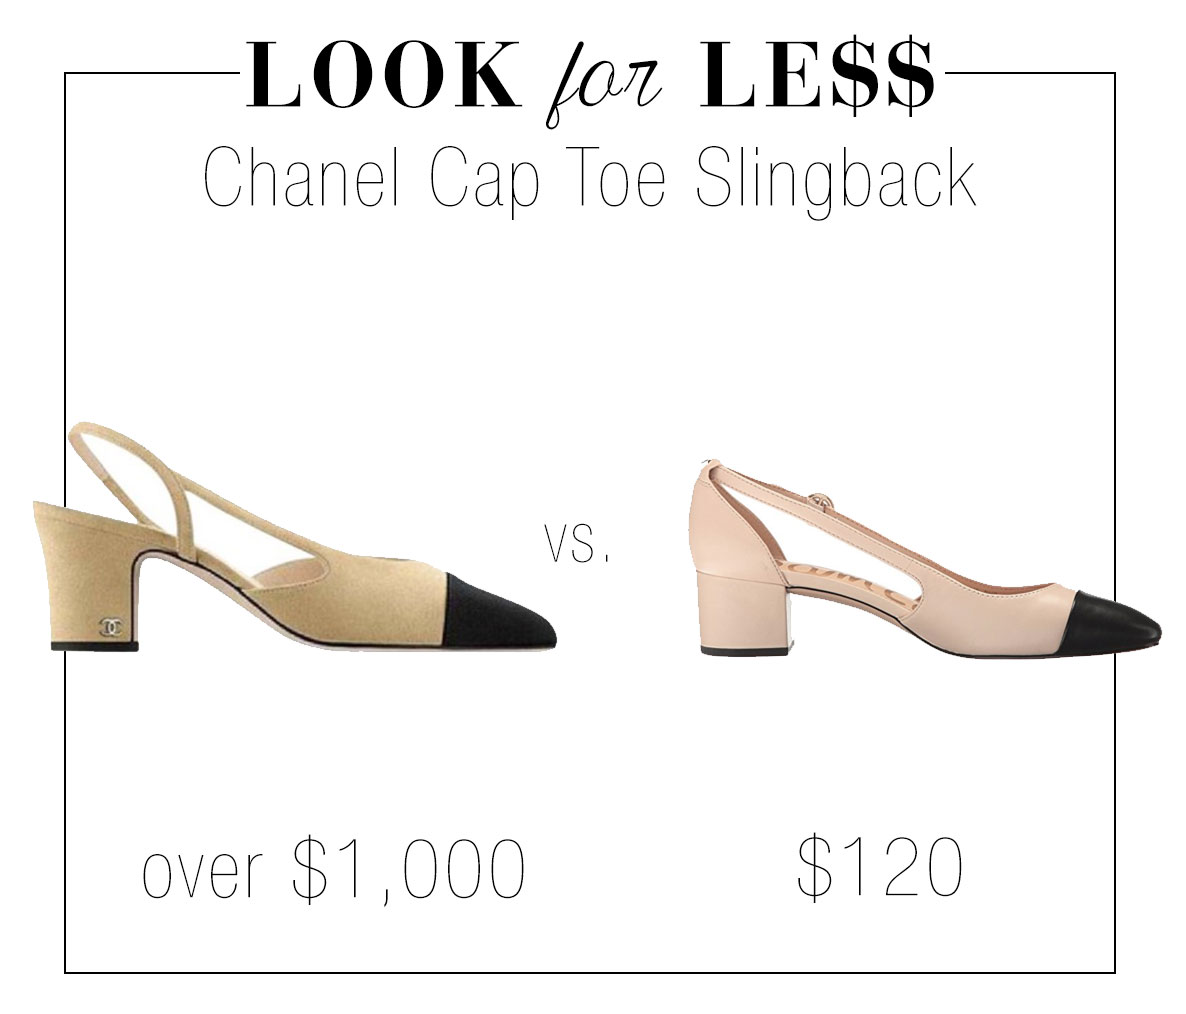 Chanel cap toe slingback knockoffs